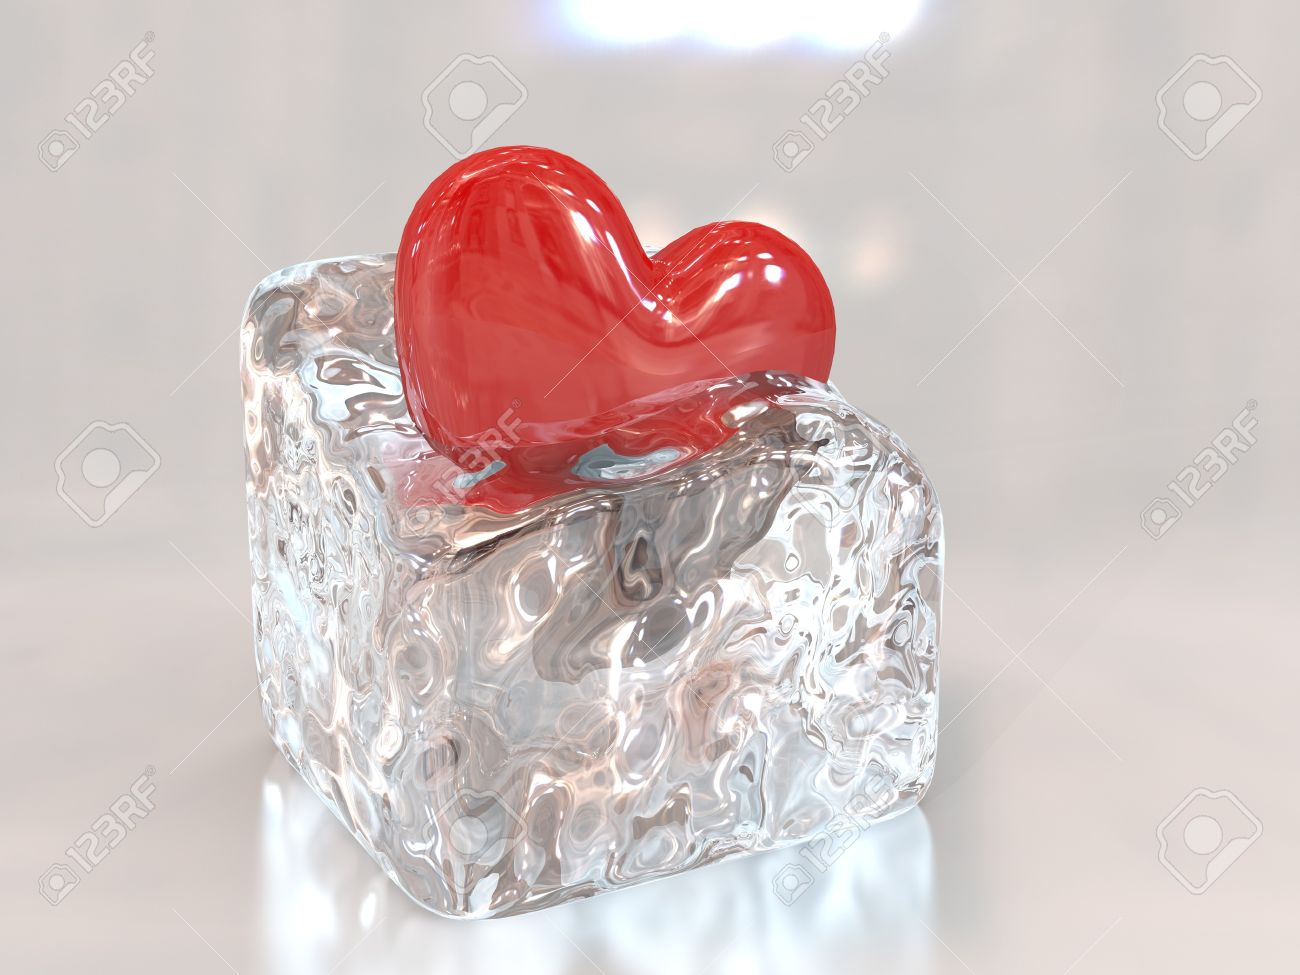 Red Heart In An Ice Cube Stock Photo   8811107